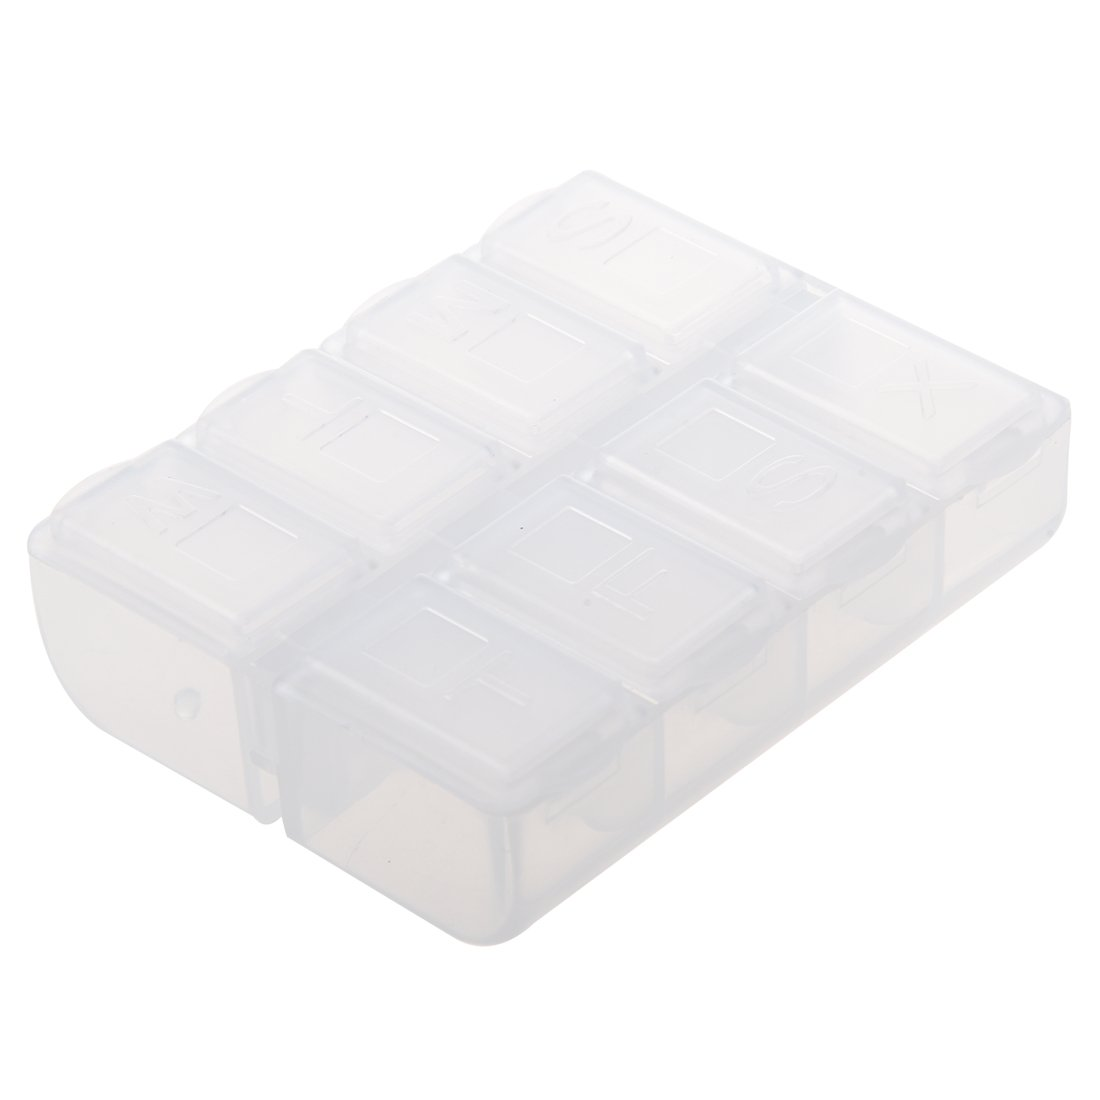 SODIAL(R) Plastic Weekly Pill Box Medicine Holder Clear White